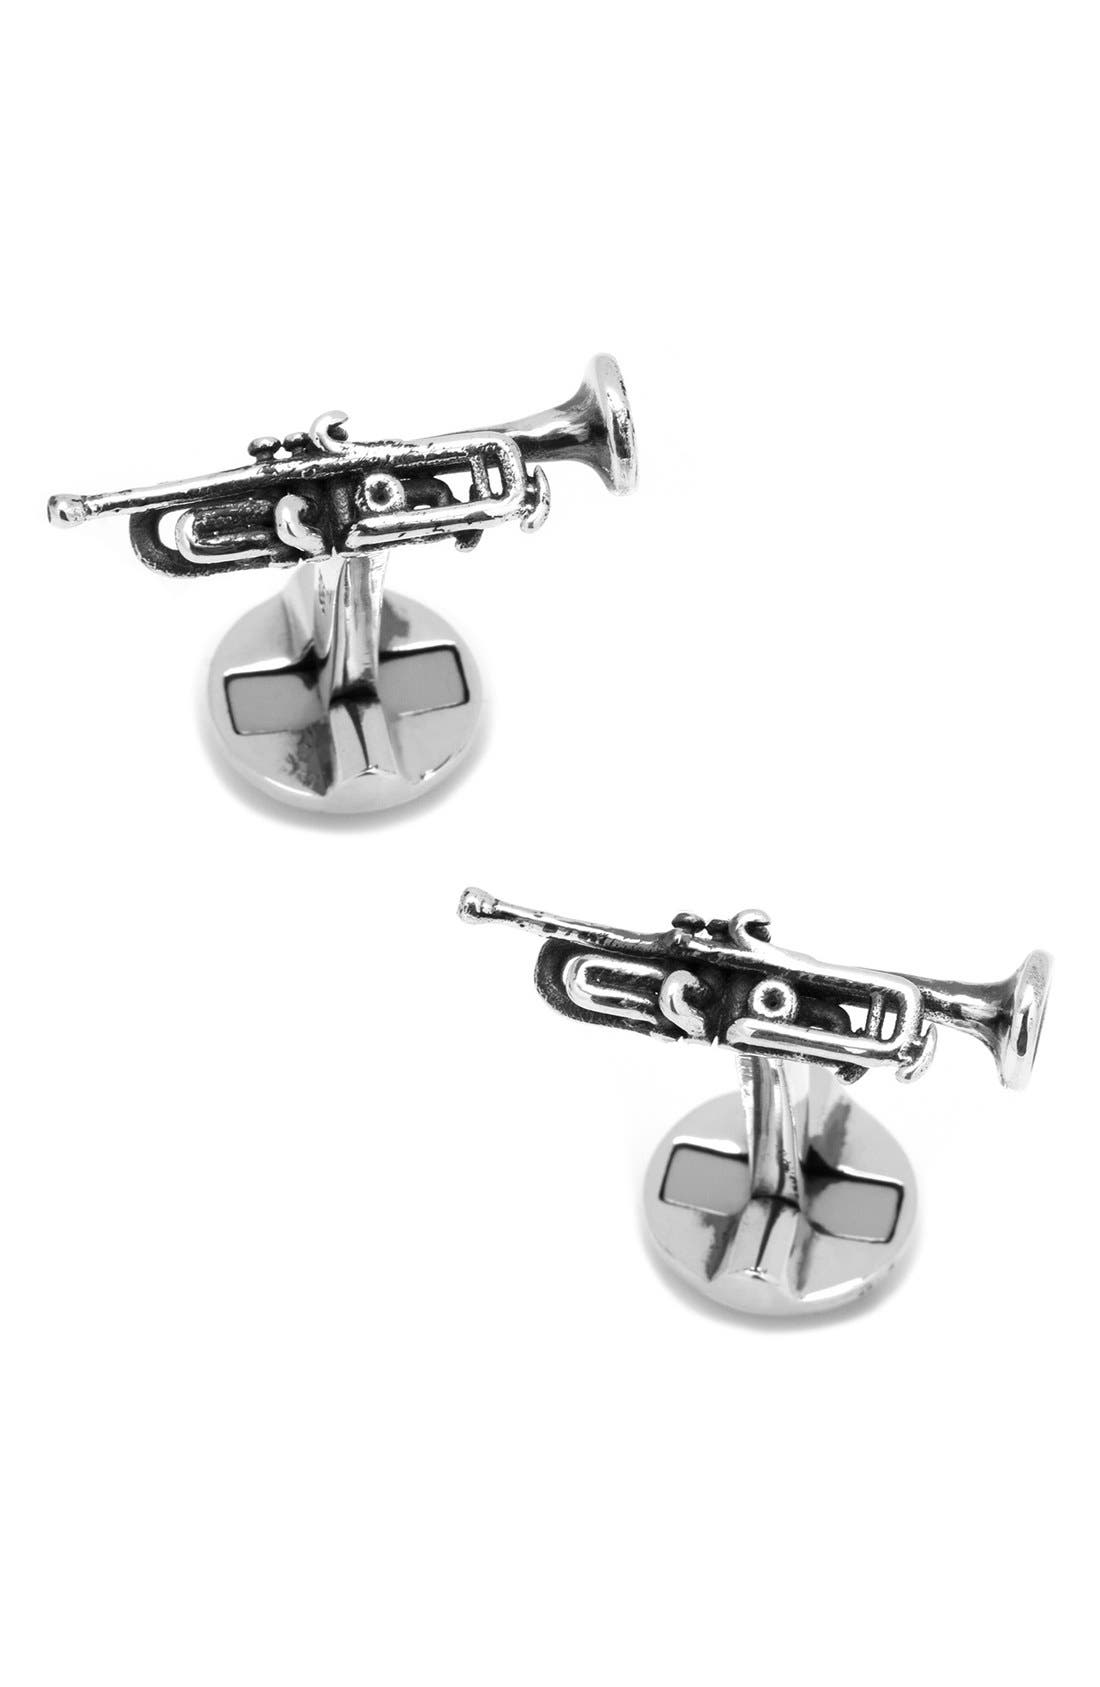 Main Image - Ox and Bull Trading Co. Trumpet Cuff Links